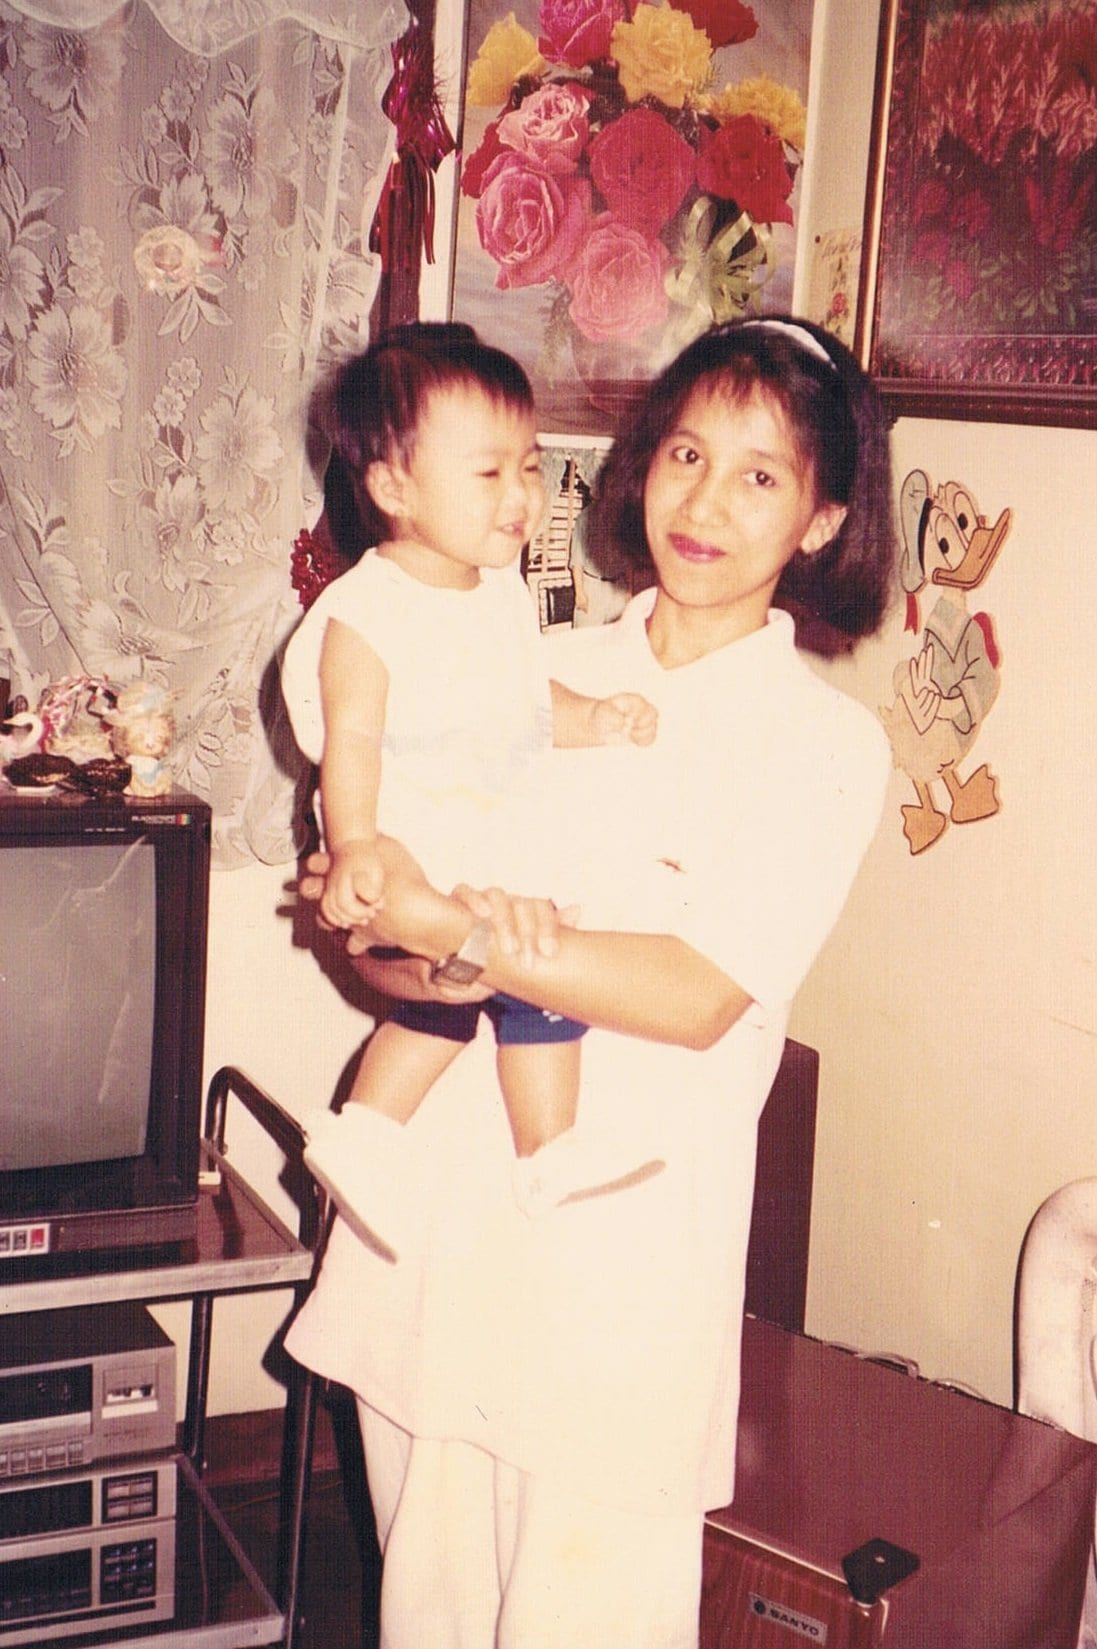 Faith's mother carrying her in her arms at their home country, the Philippines.